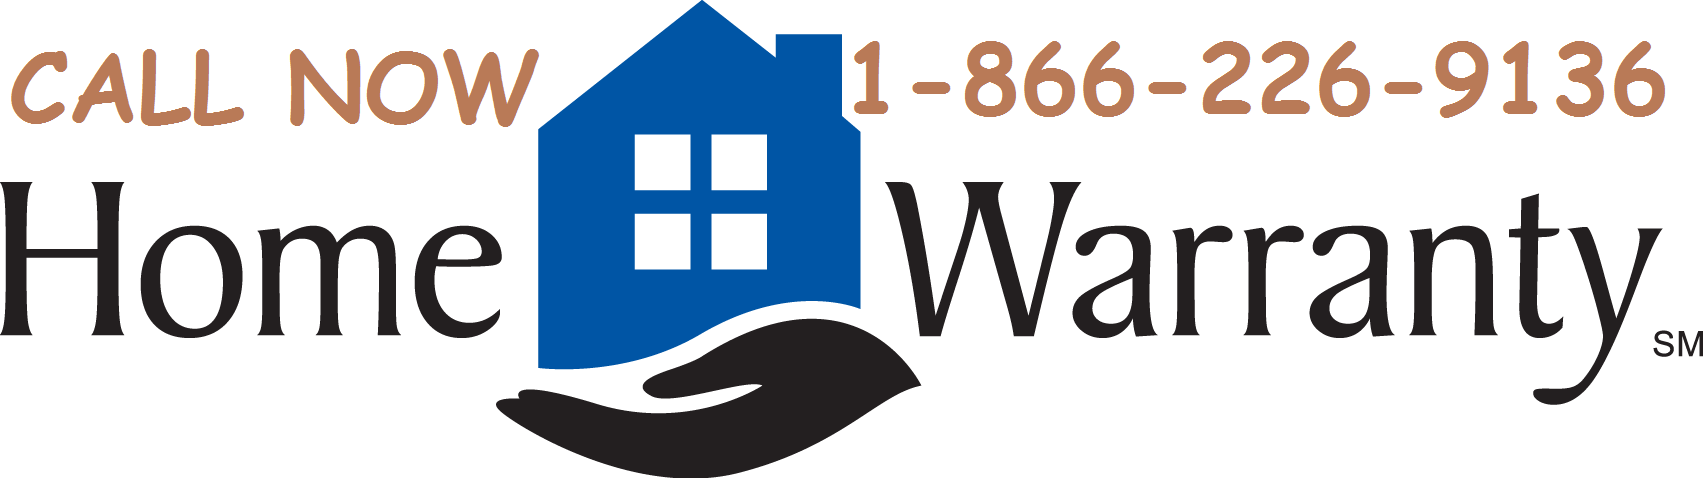 Affordable Home Warranty with 24x7 Emergency service. Call Now +1-866-226-9136